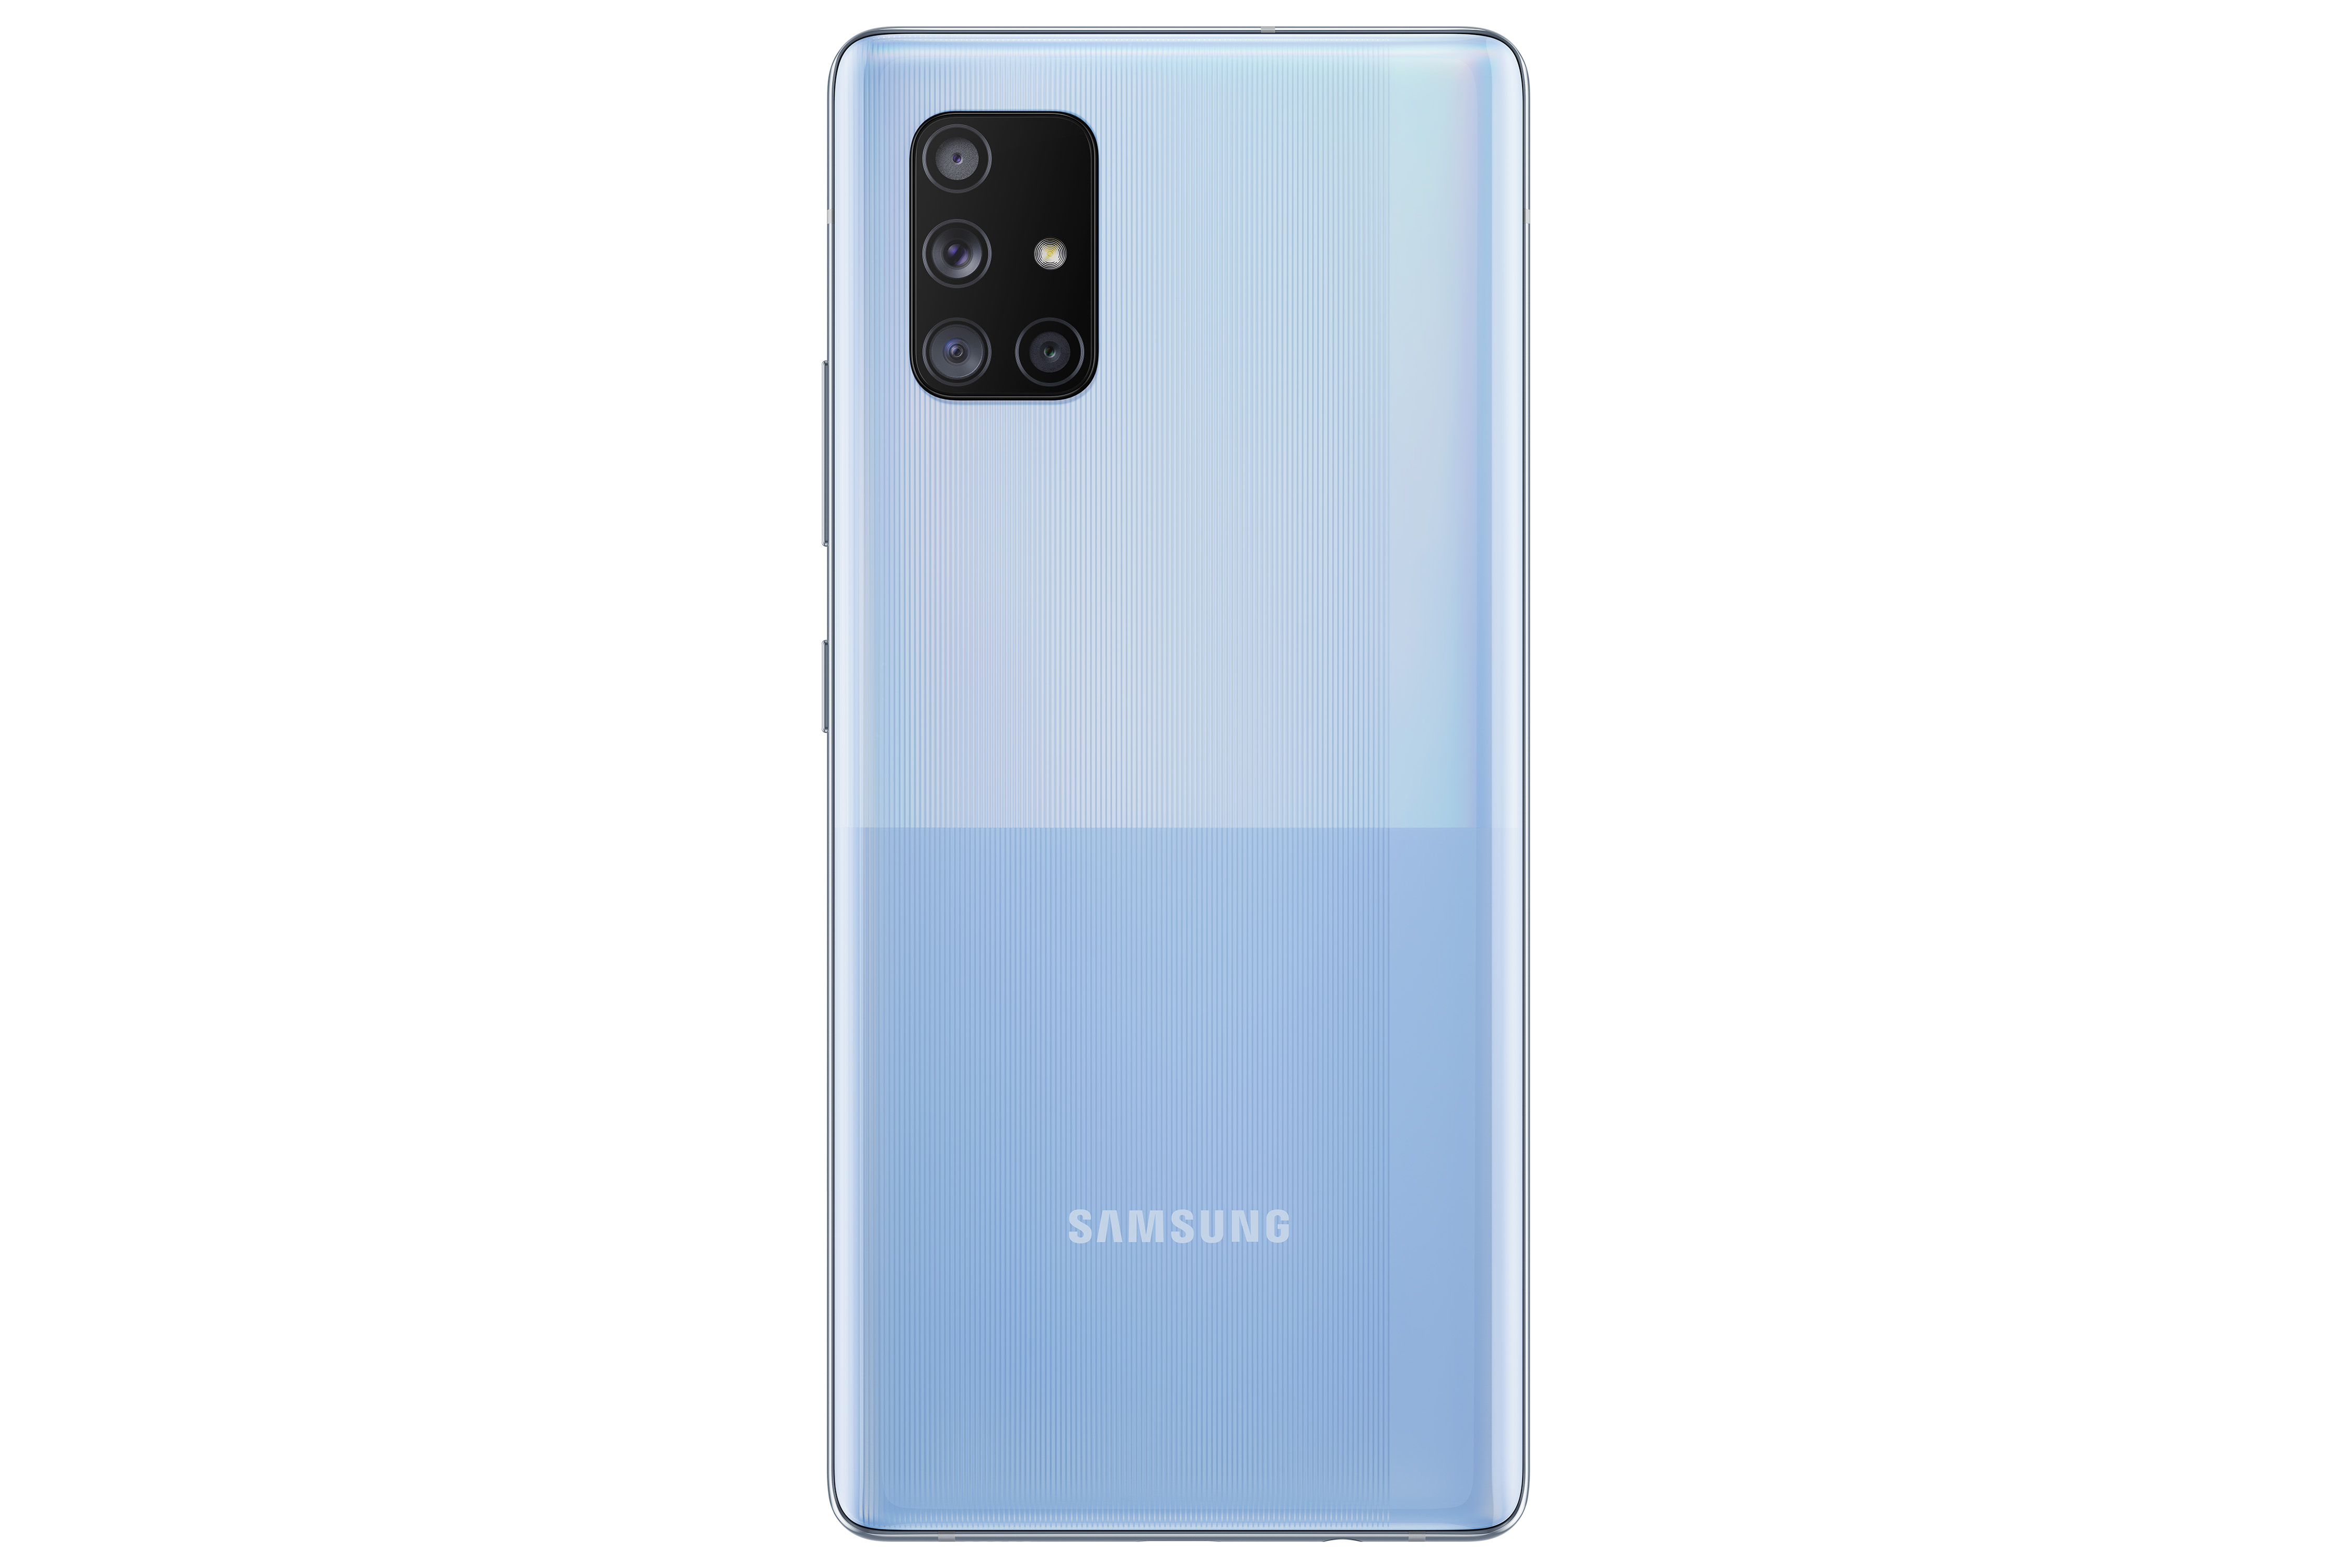 Samsung Announces The New Addition To 5g Smartphone Lineup Galaxy A71 5g And Galaxy A51 5g Samsung Newsroom Global Media Library